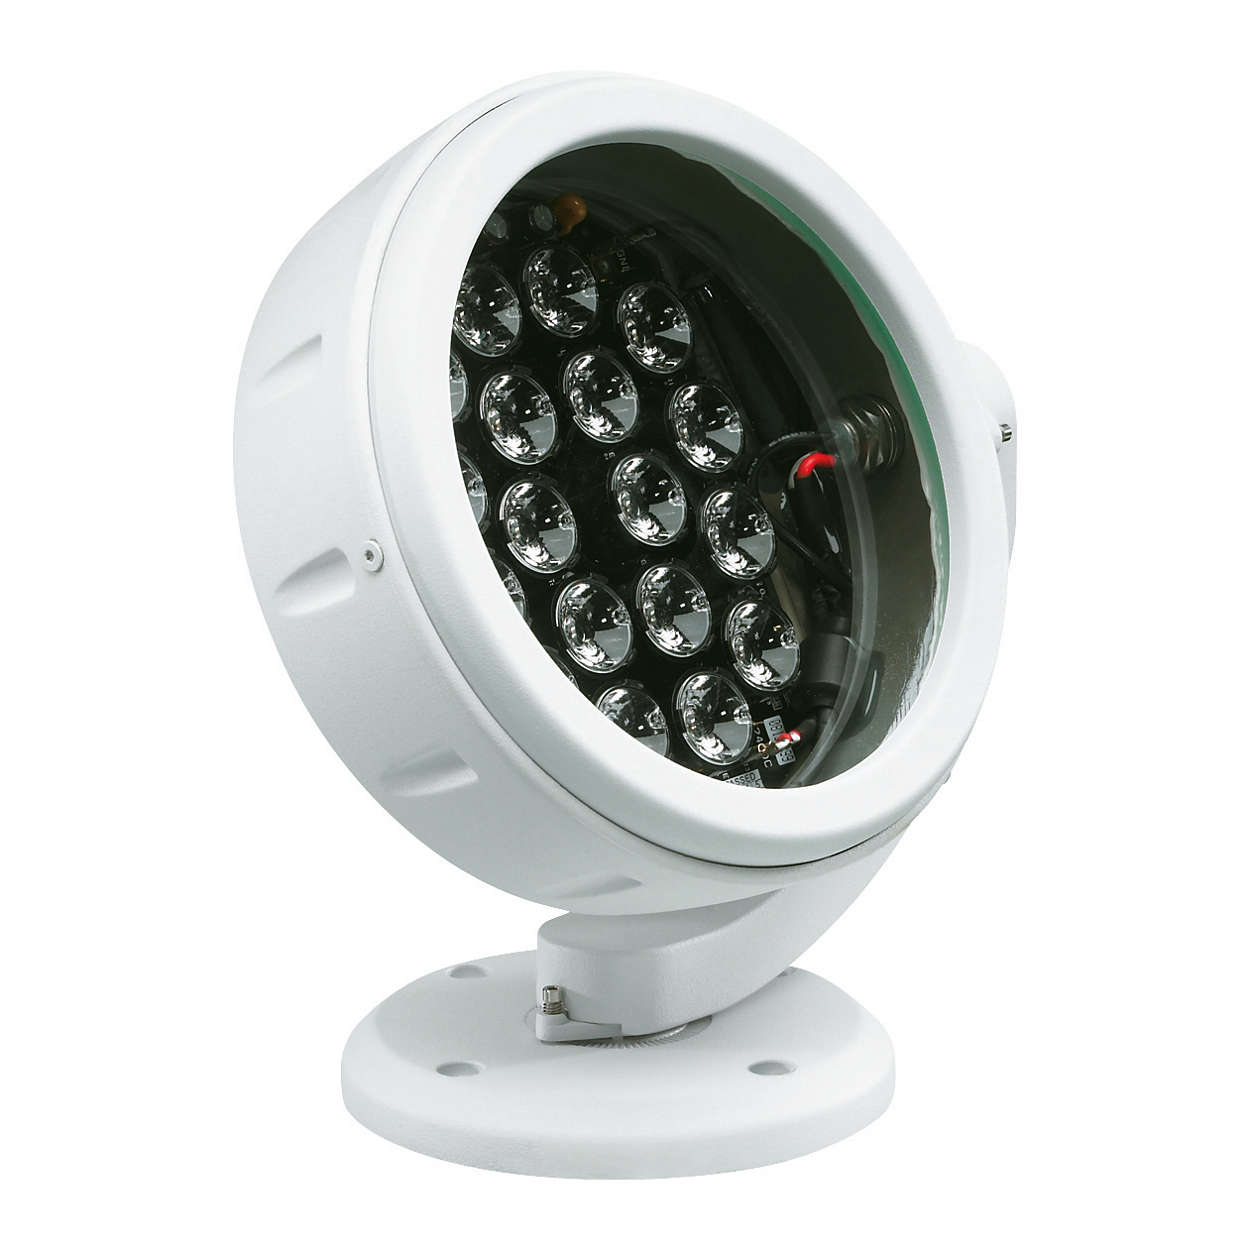 ColorBurst 6 – round, colour-changing LED spotlight for indoor and outdoor applications